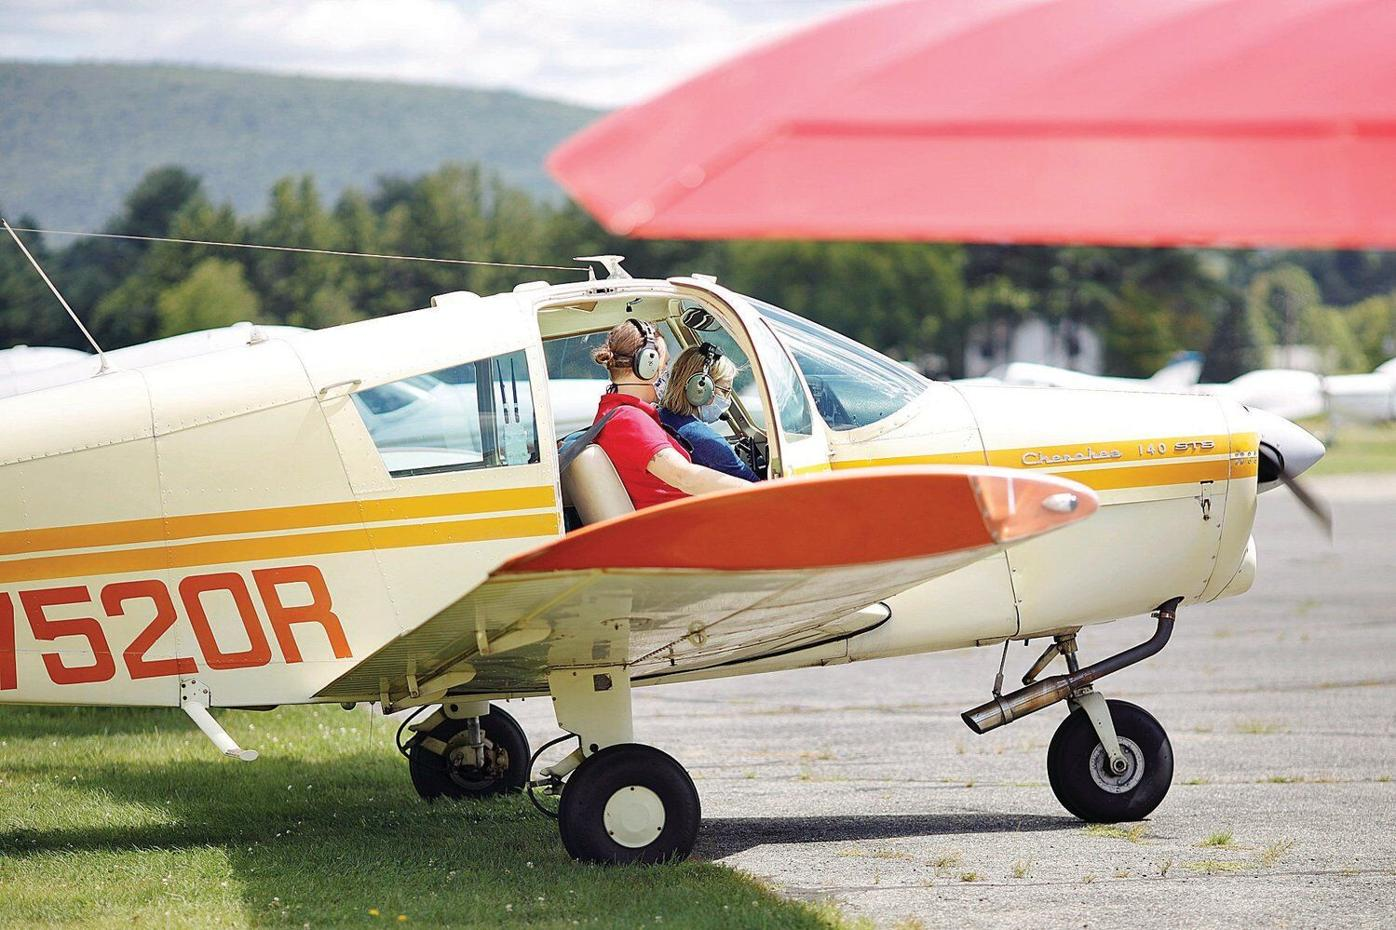 A day in the life of Great Barrington's airport, as storm cloud looms